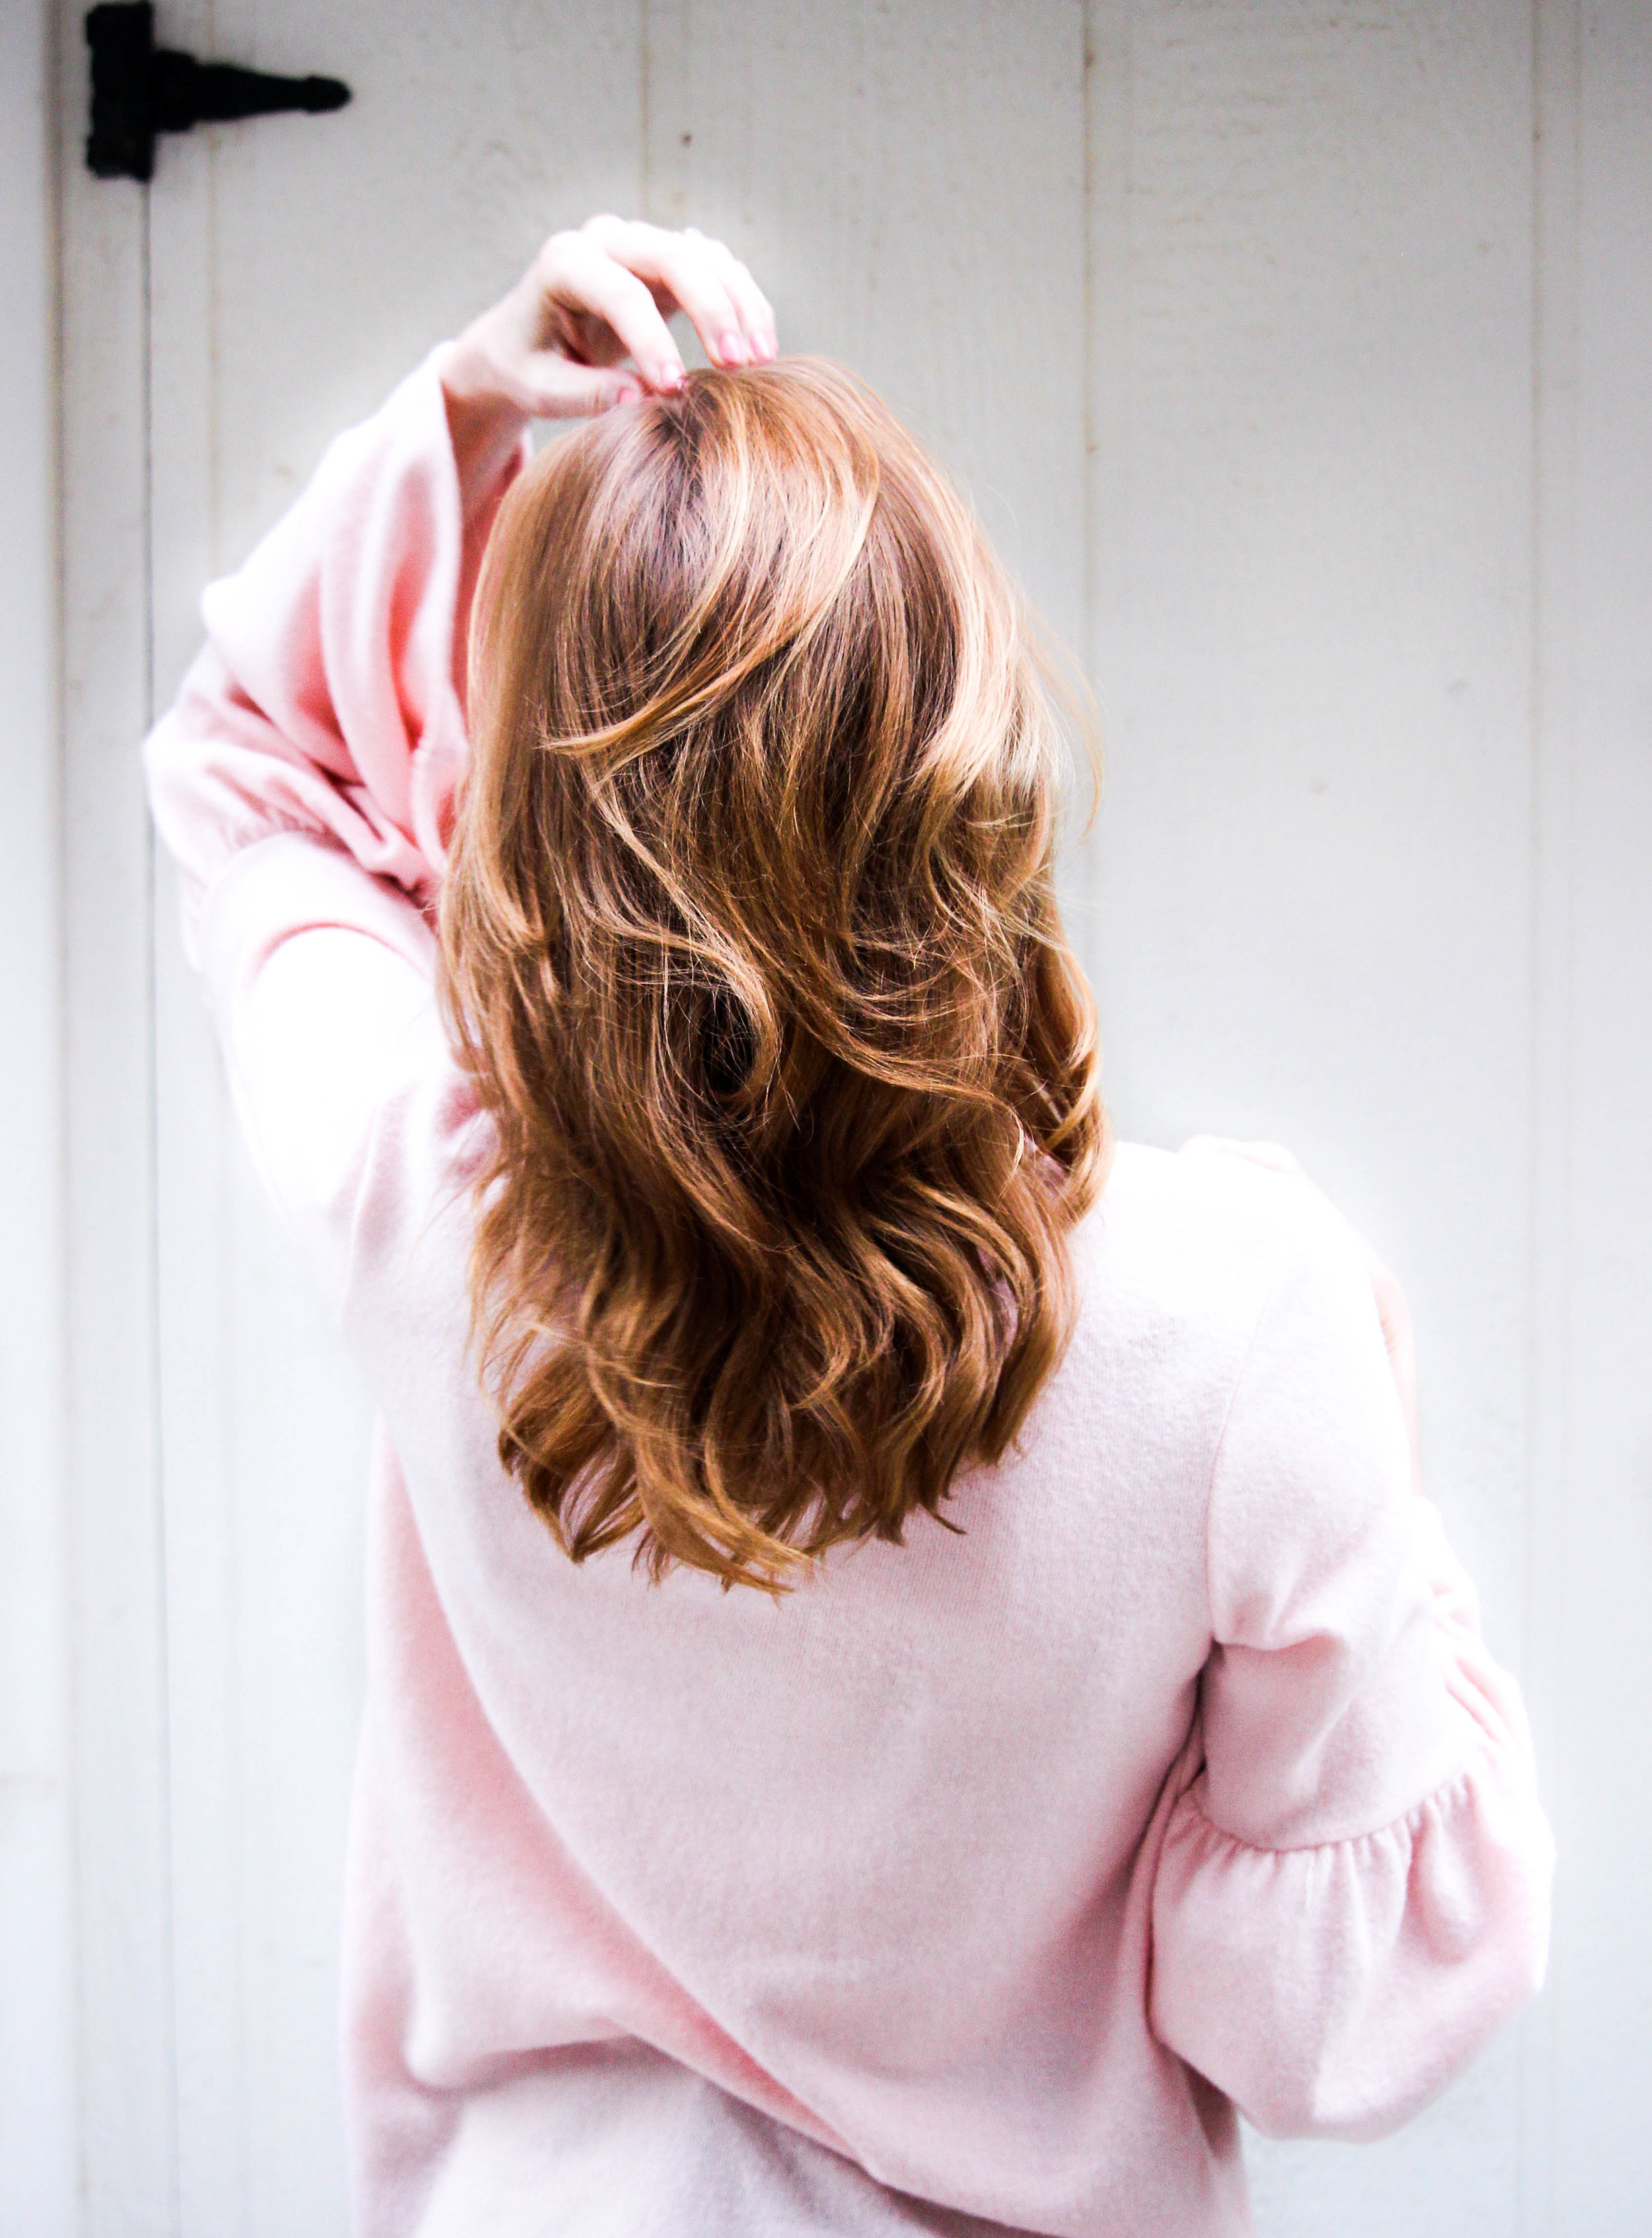 back view woman with shiny brown hair